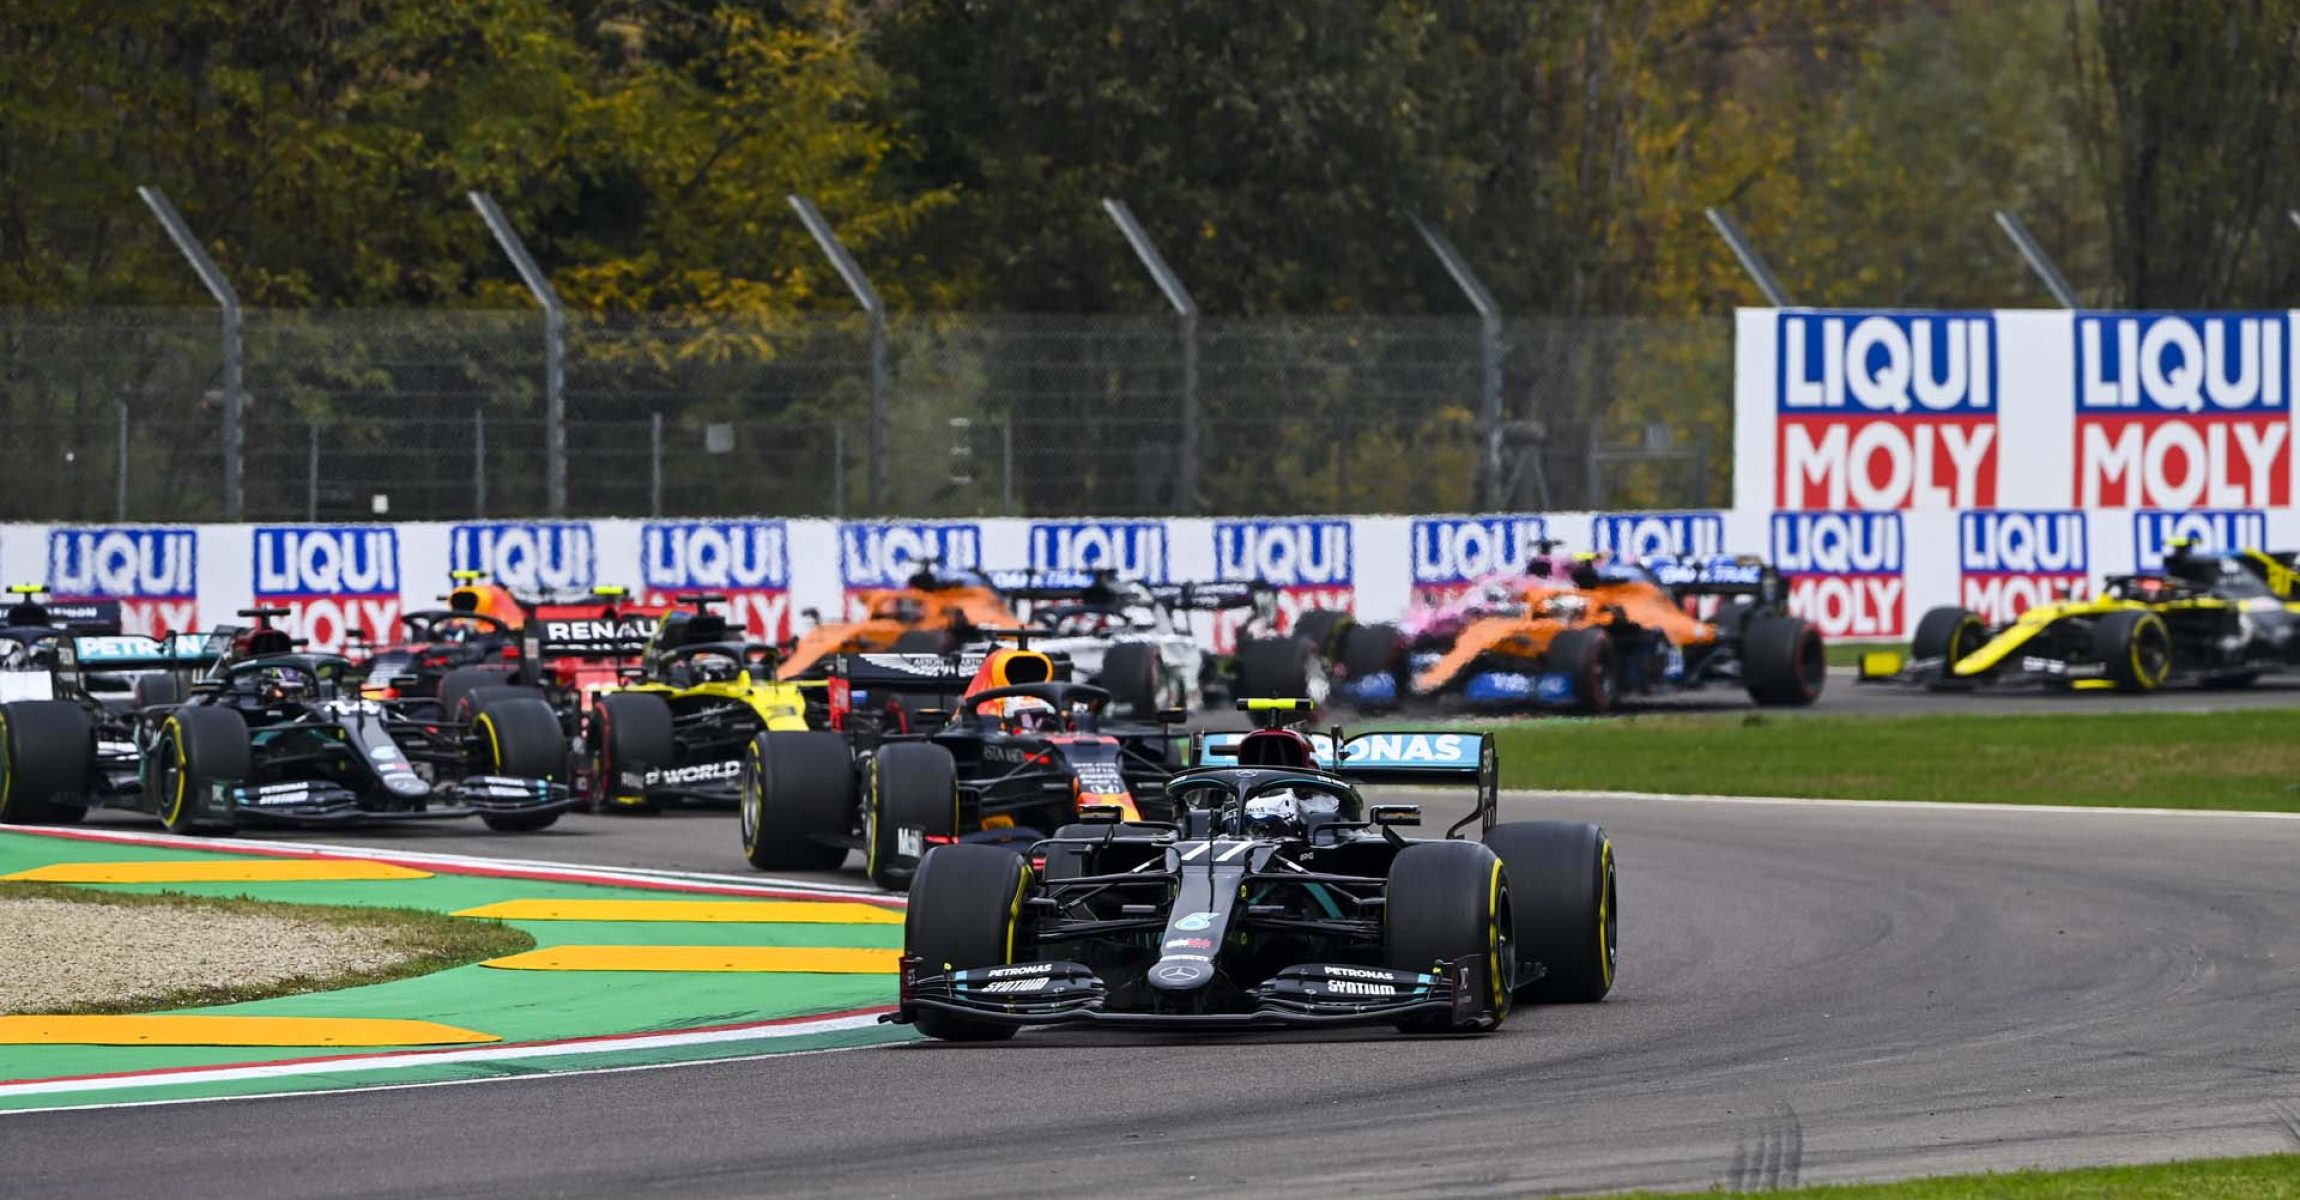 2020 Emilia Romagna Grand Prix, Sunday - LAT images Valtteri Bottas Mercedes start